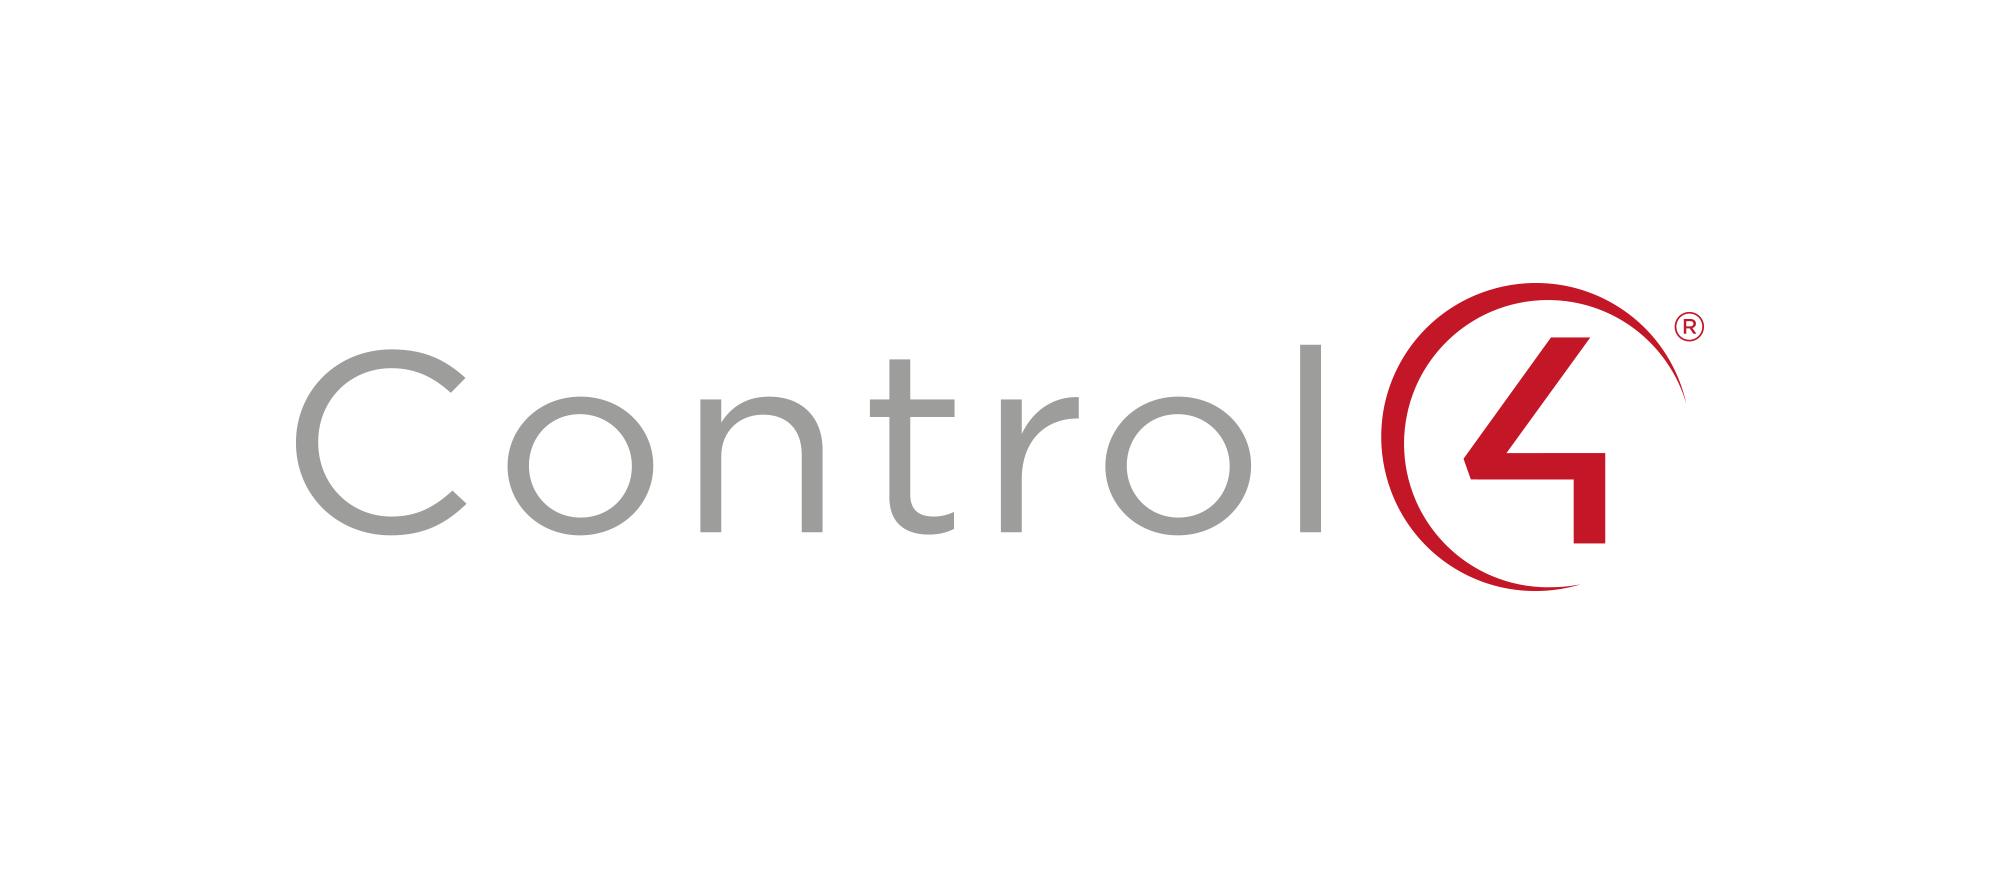 CONTROL 4 - A home automation system from Control4 can turn your home into a smart home.